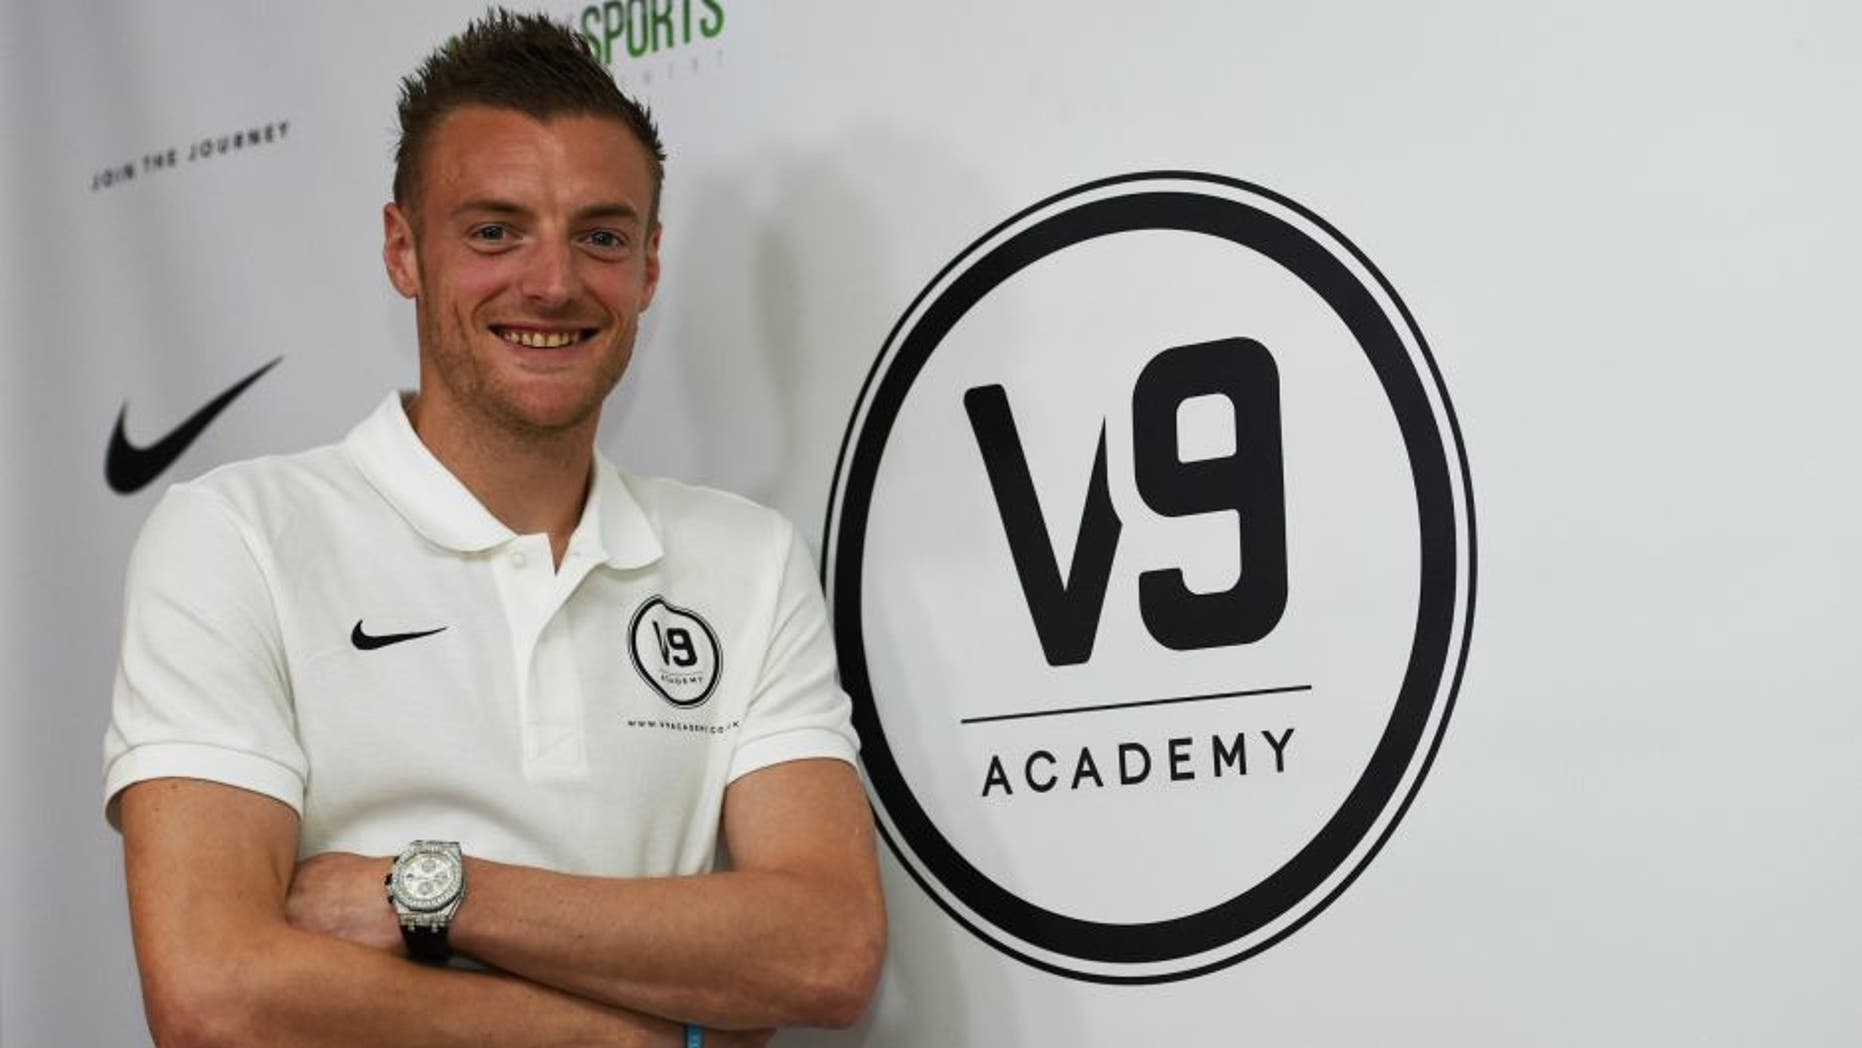 Leicester City and England striker Jamie Vardy attends the Jamie Vardy V9 Academy Launch at The King Power Stadium on May 9, 2016 in Leicester, England.